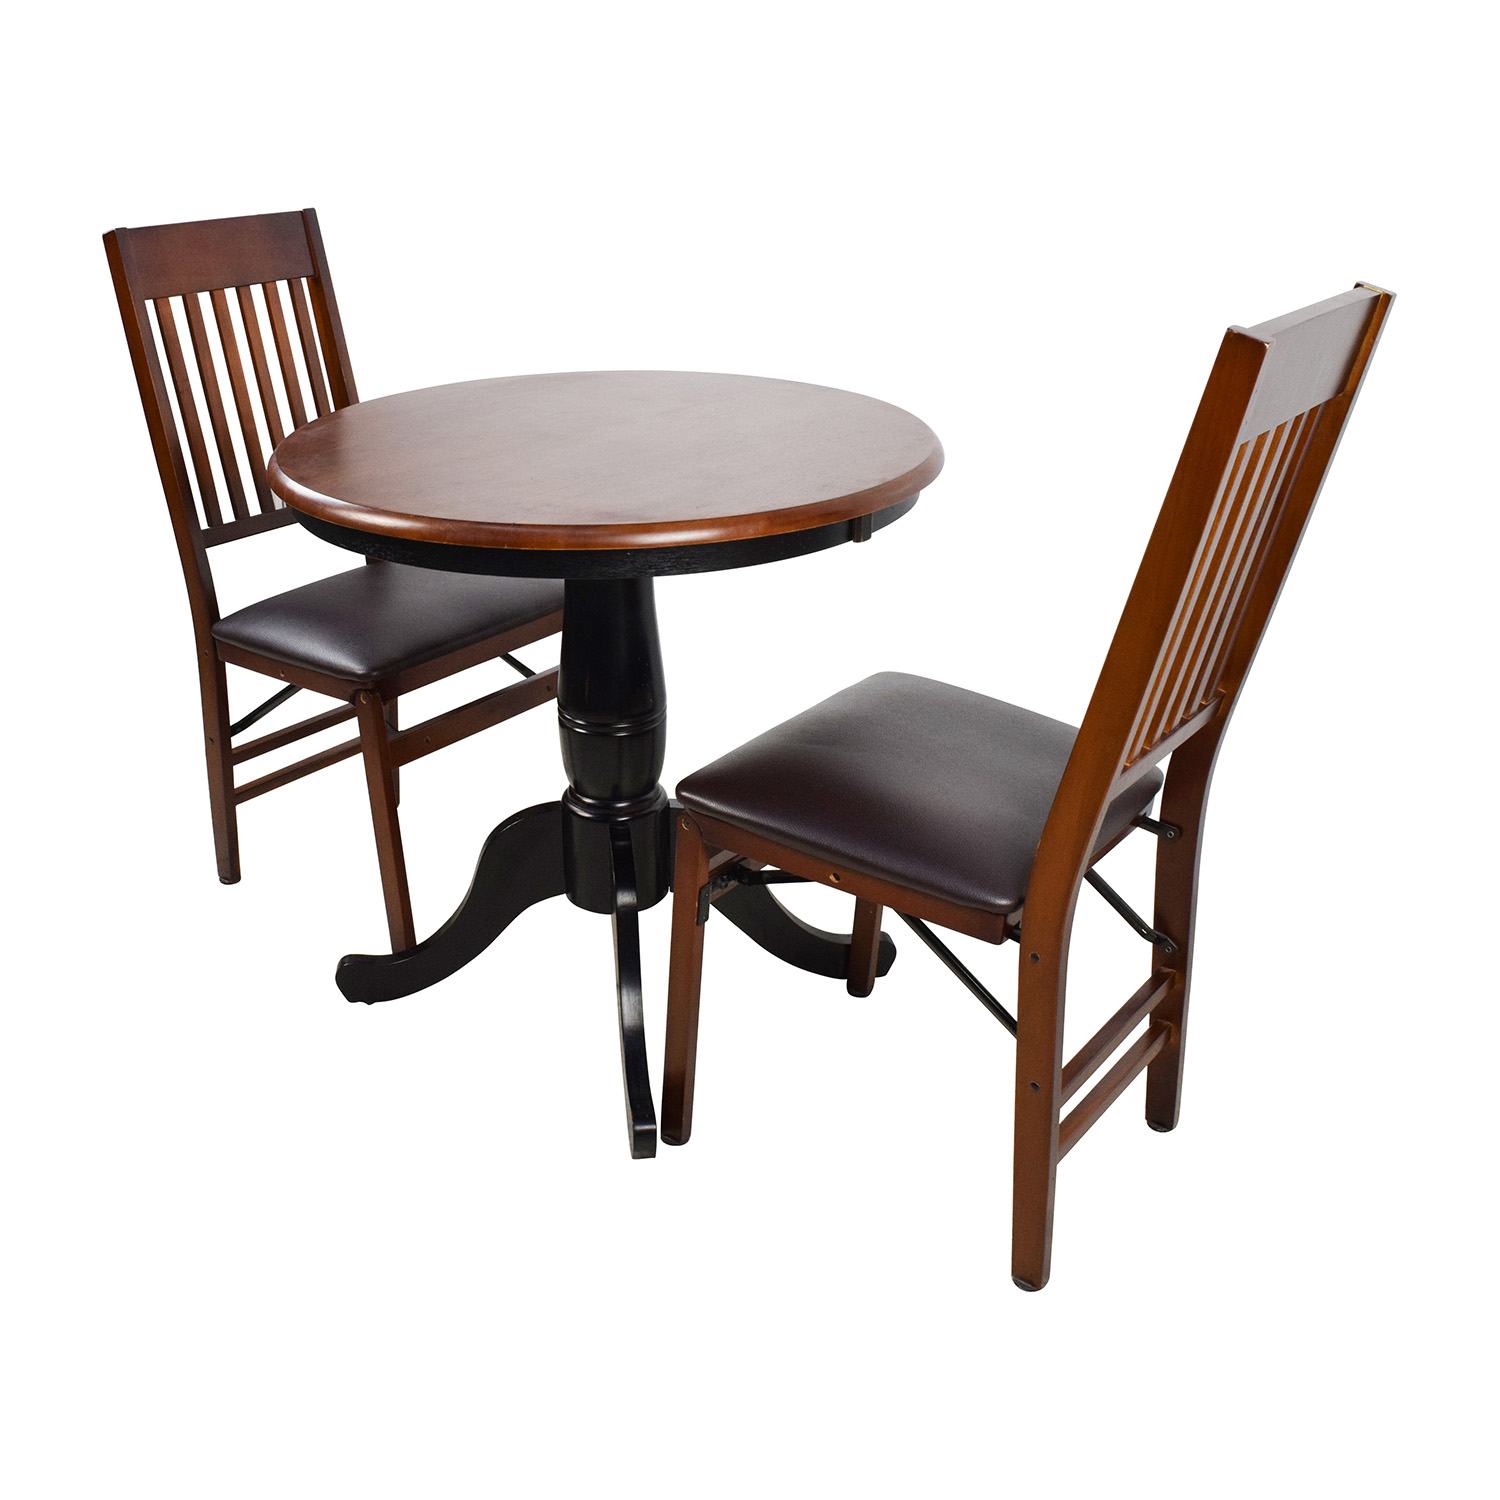 ... Pier 1 Pier 1 Keeran Bistro Rubbed Black Round Table Price ...